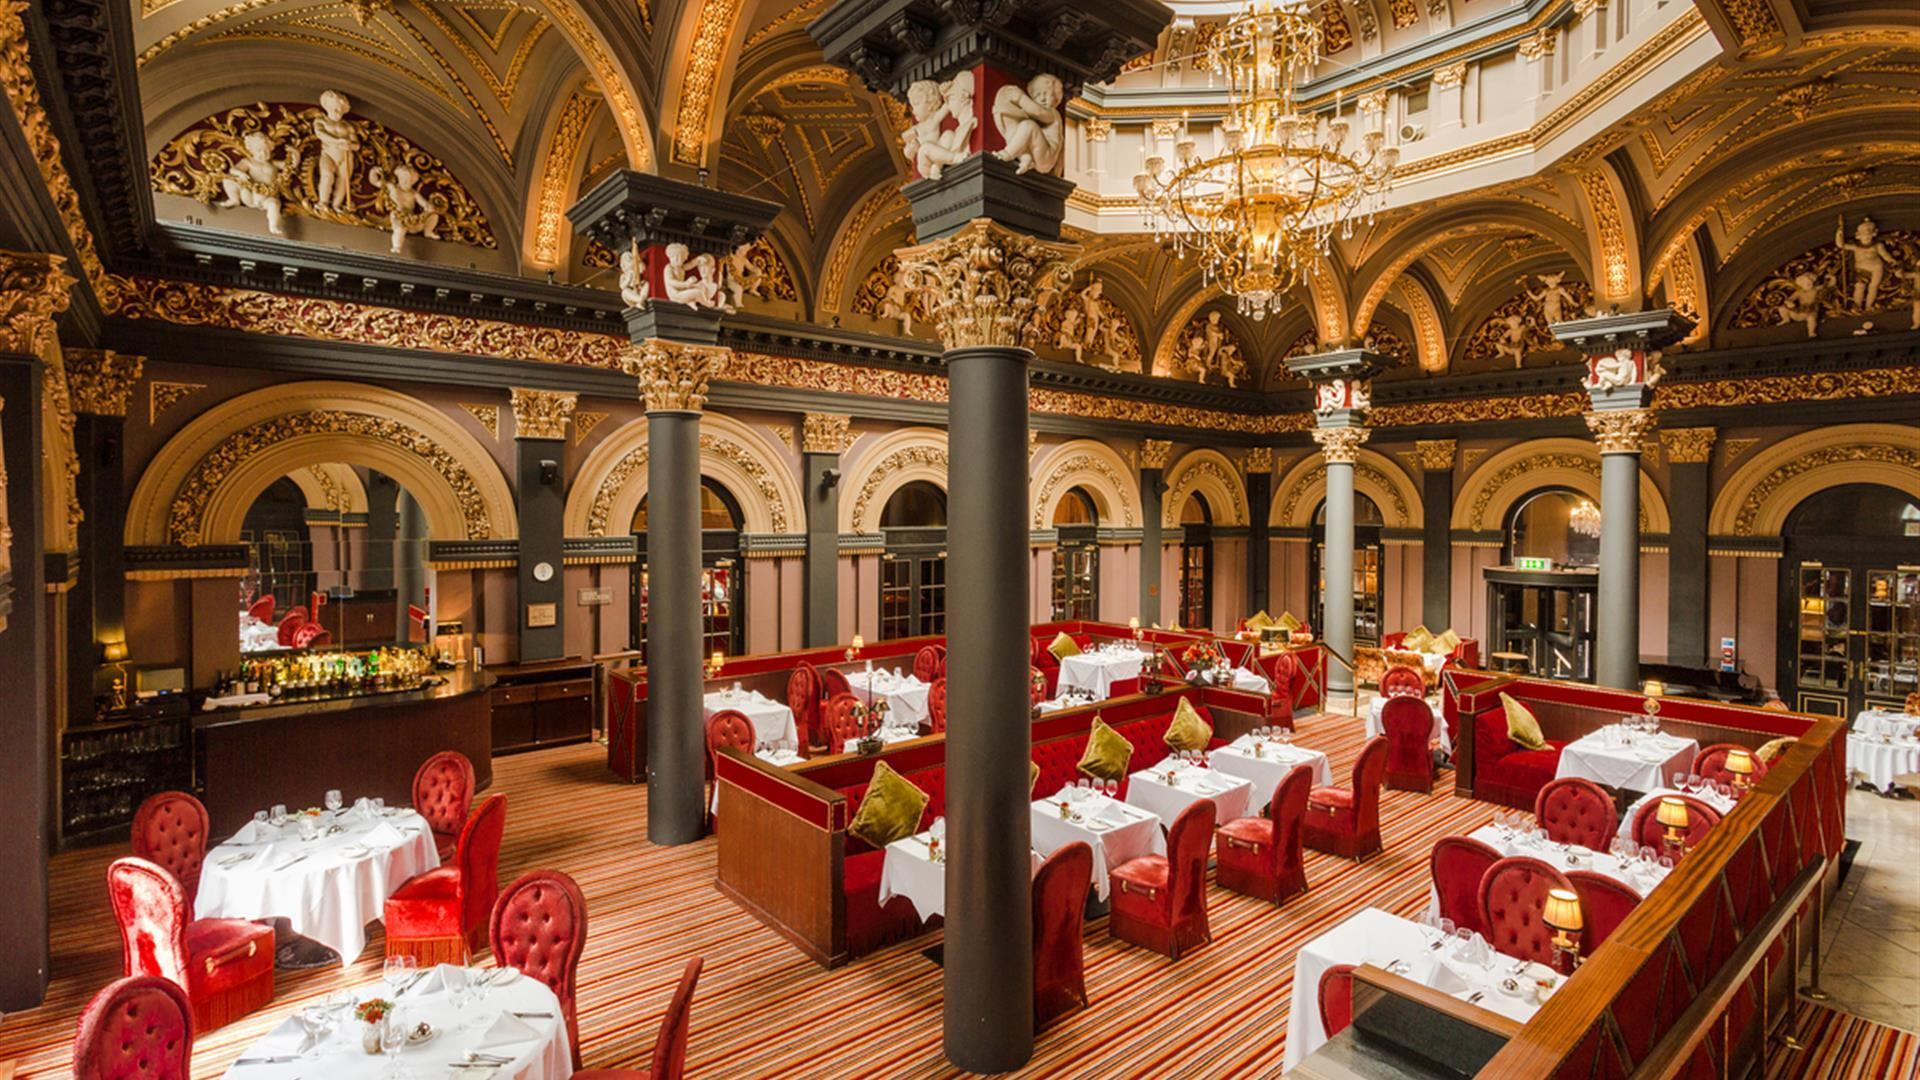 The Great Room Restaurant at The Merchant Hotel